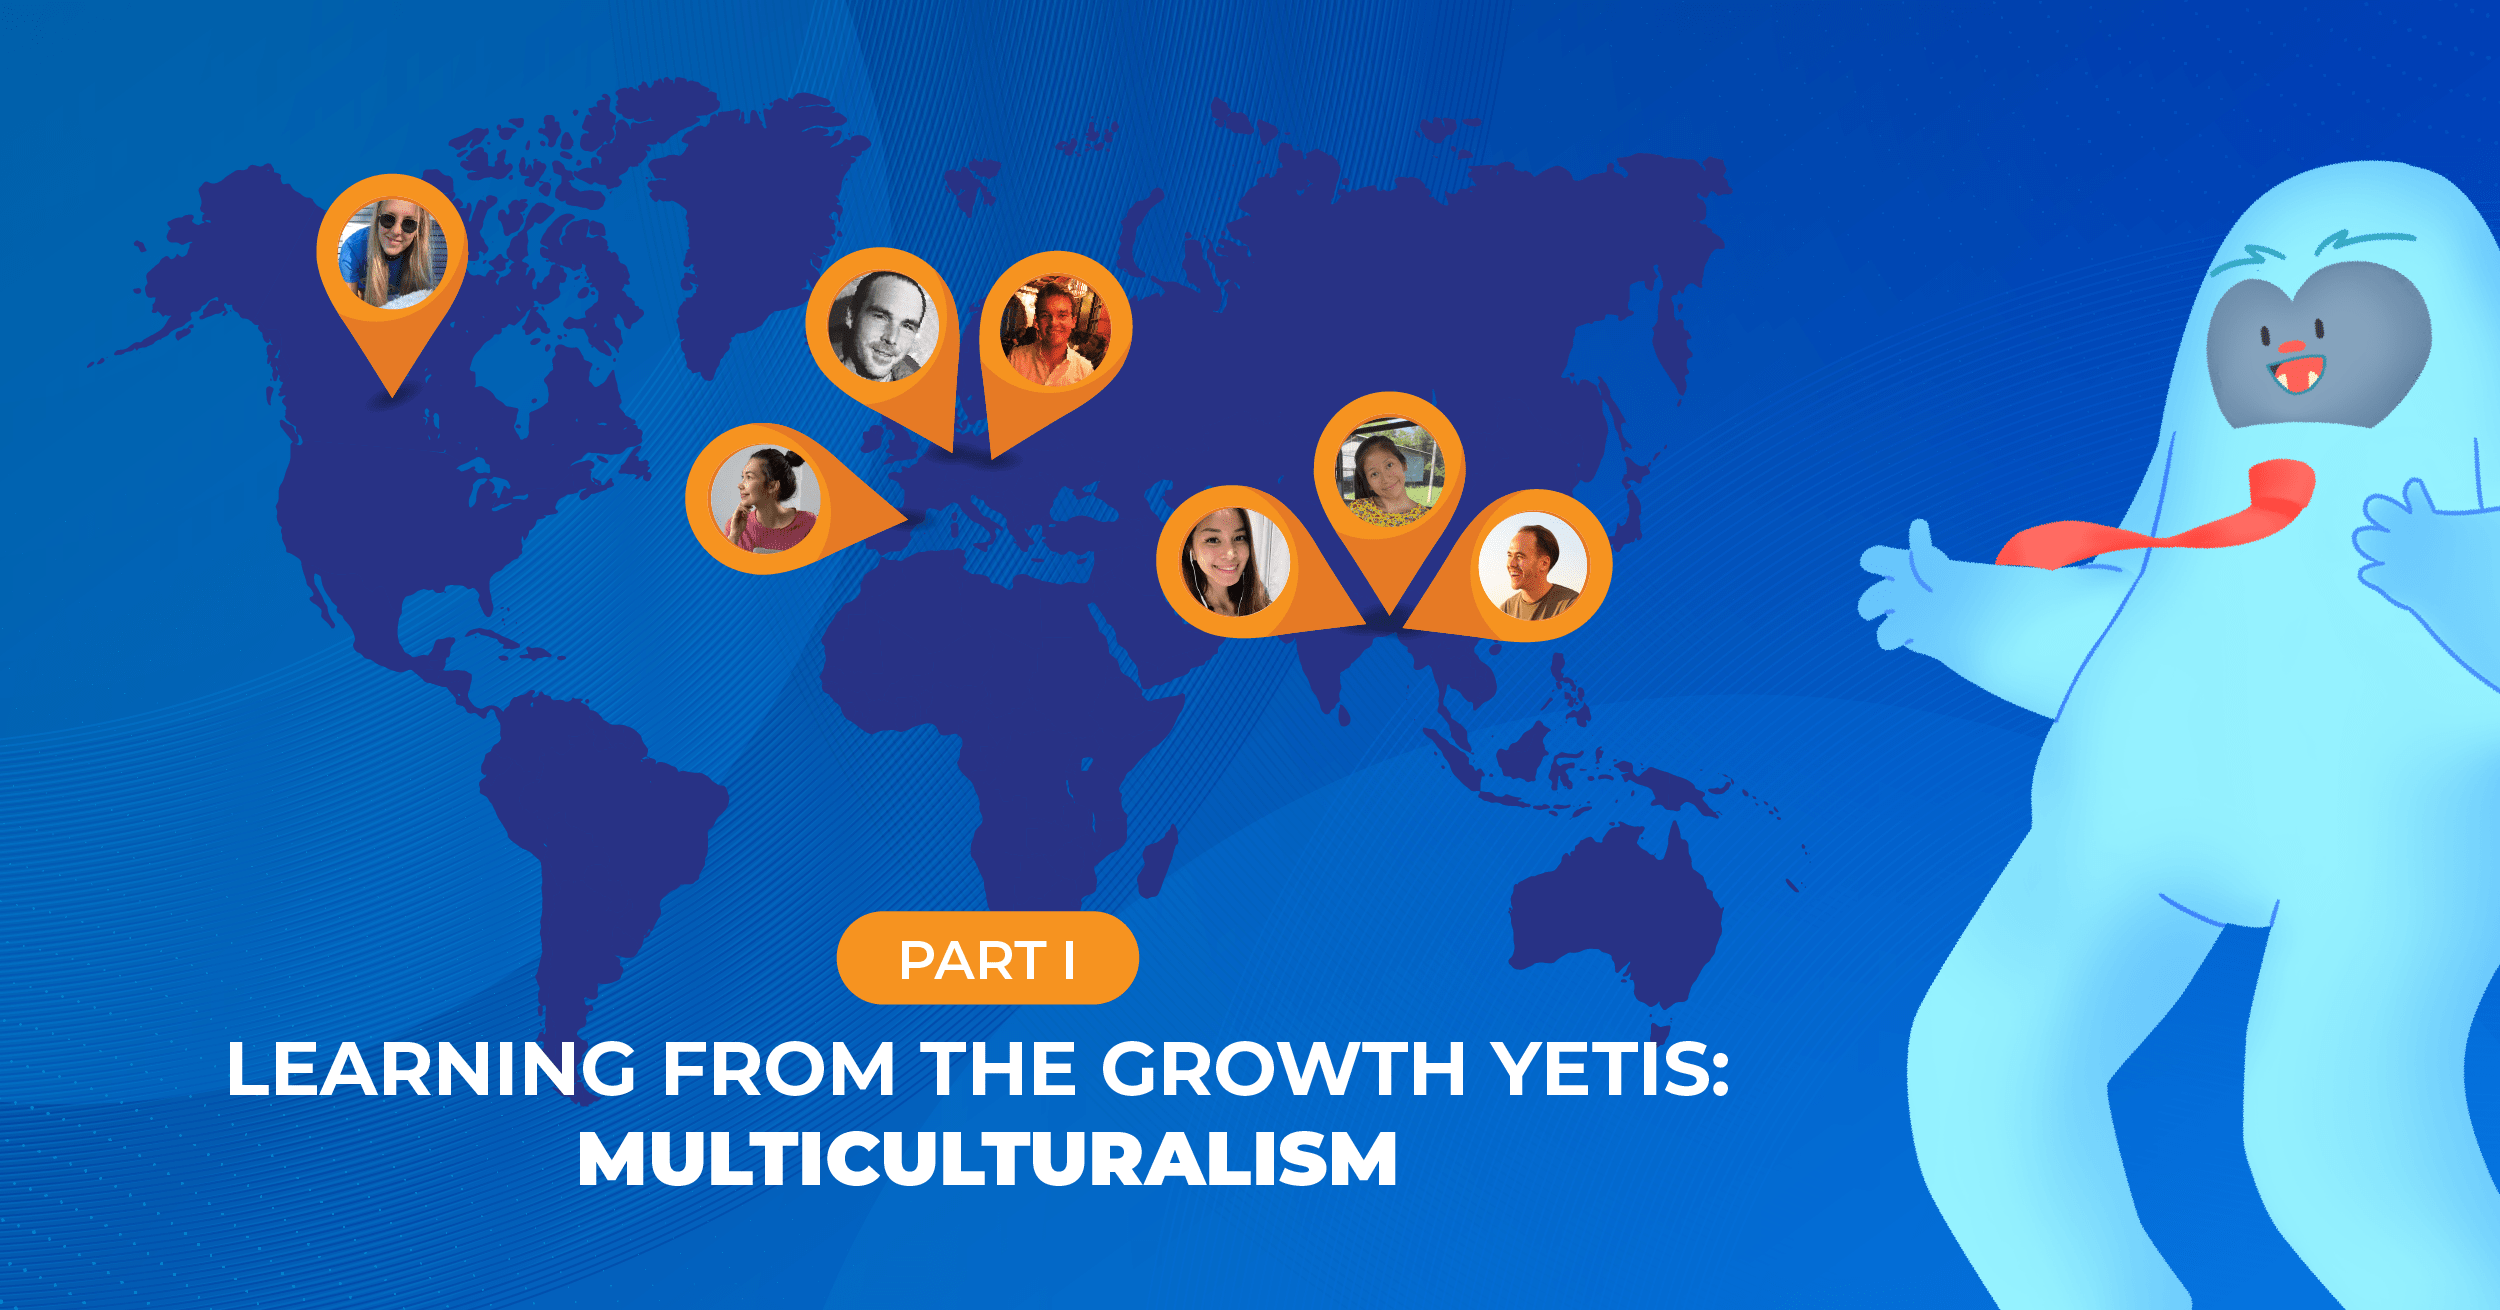 (Part 1) Learning from the Growth Yetis: Multiculturalism